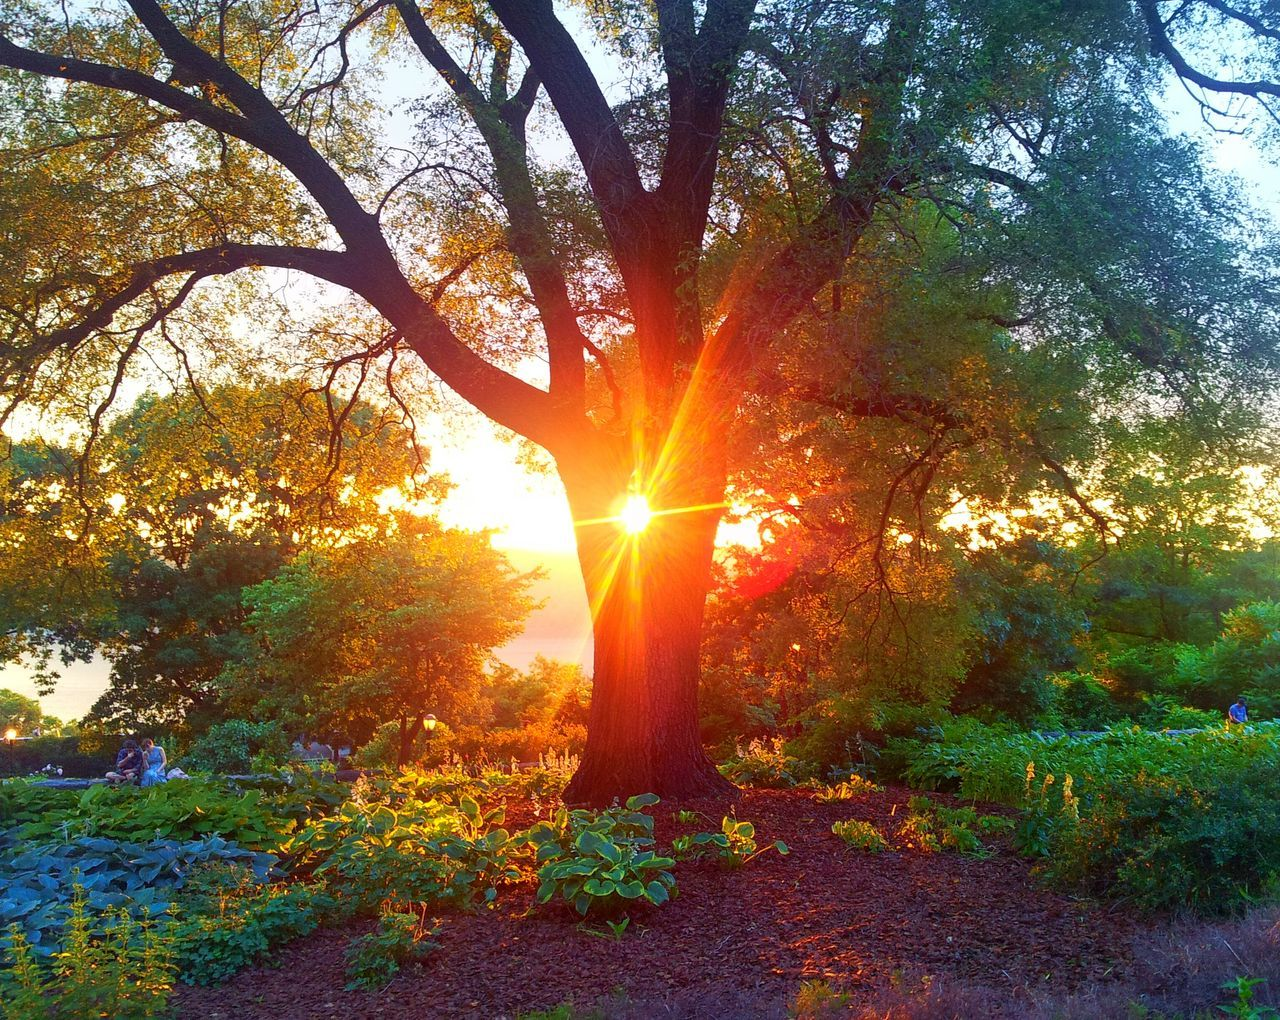 tree, sunbeam, sun, nature, beauty in nature, tranquil scene, sunlight, lens flare, tranquility, orange color, scenics, sunset, growth, no people, outdoors, autumn, branch, day, sky